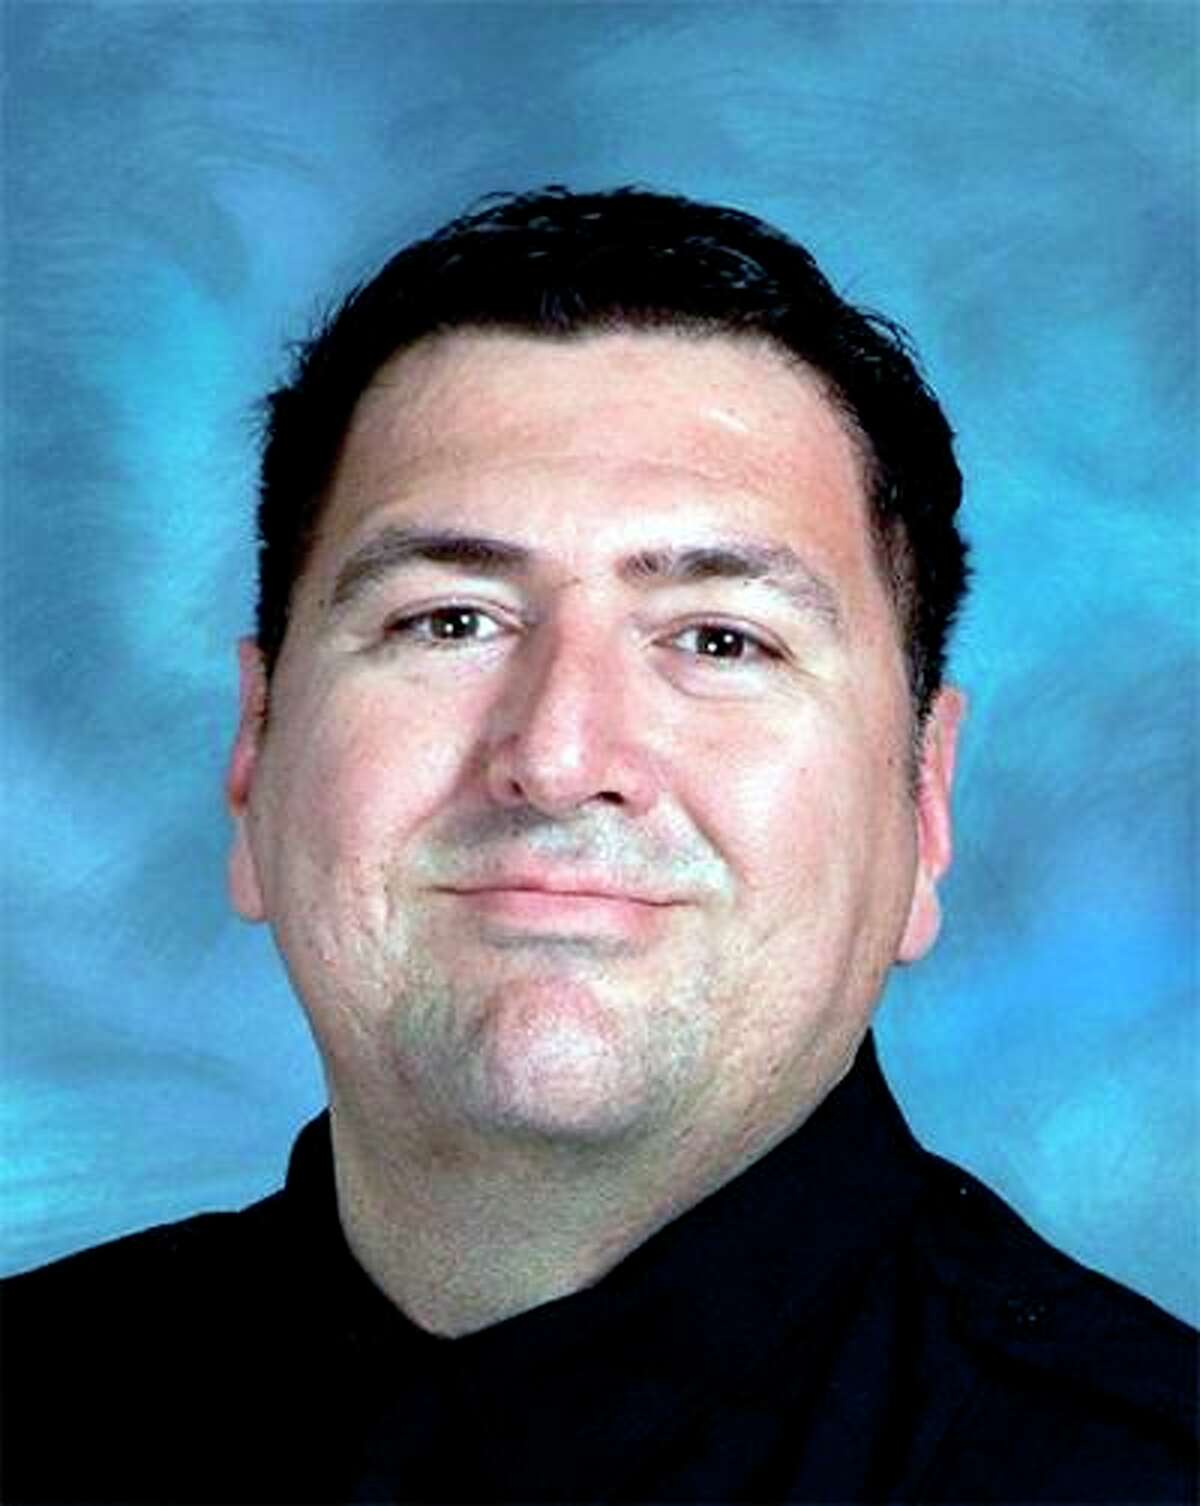 Firefighter Greg Garza, a 17-year veteran of the San Antonio Fire Department, died after being struck by a van early Tuesday. Garza, 49, had responded to a report of an electrical fire at a downtown hotel.